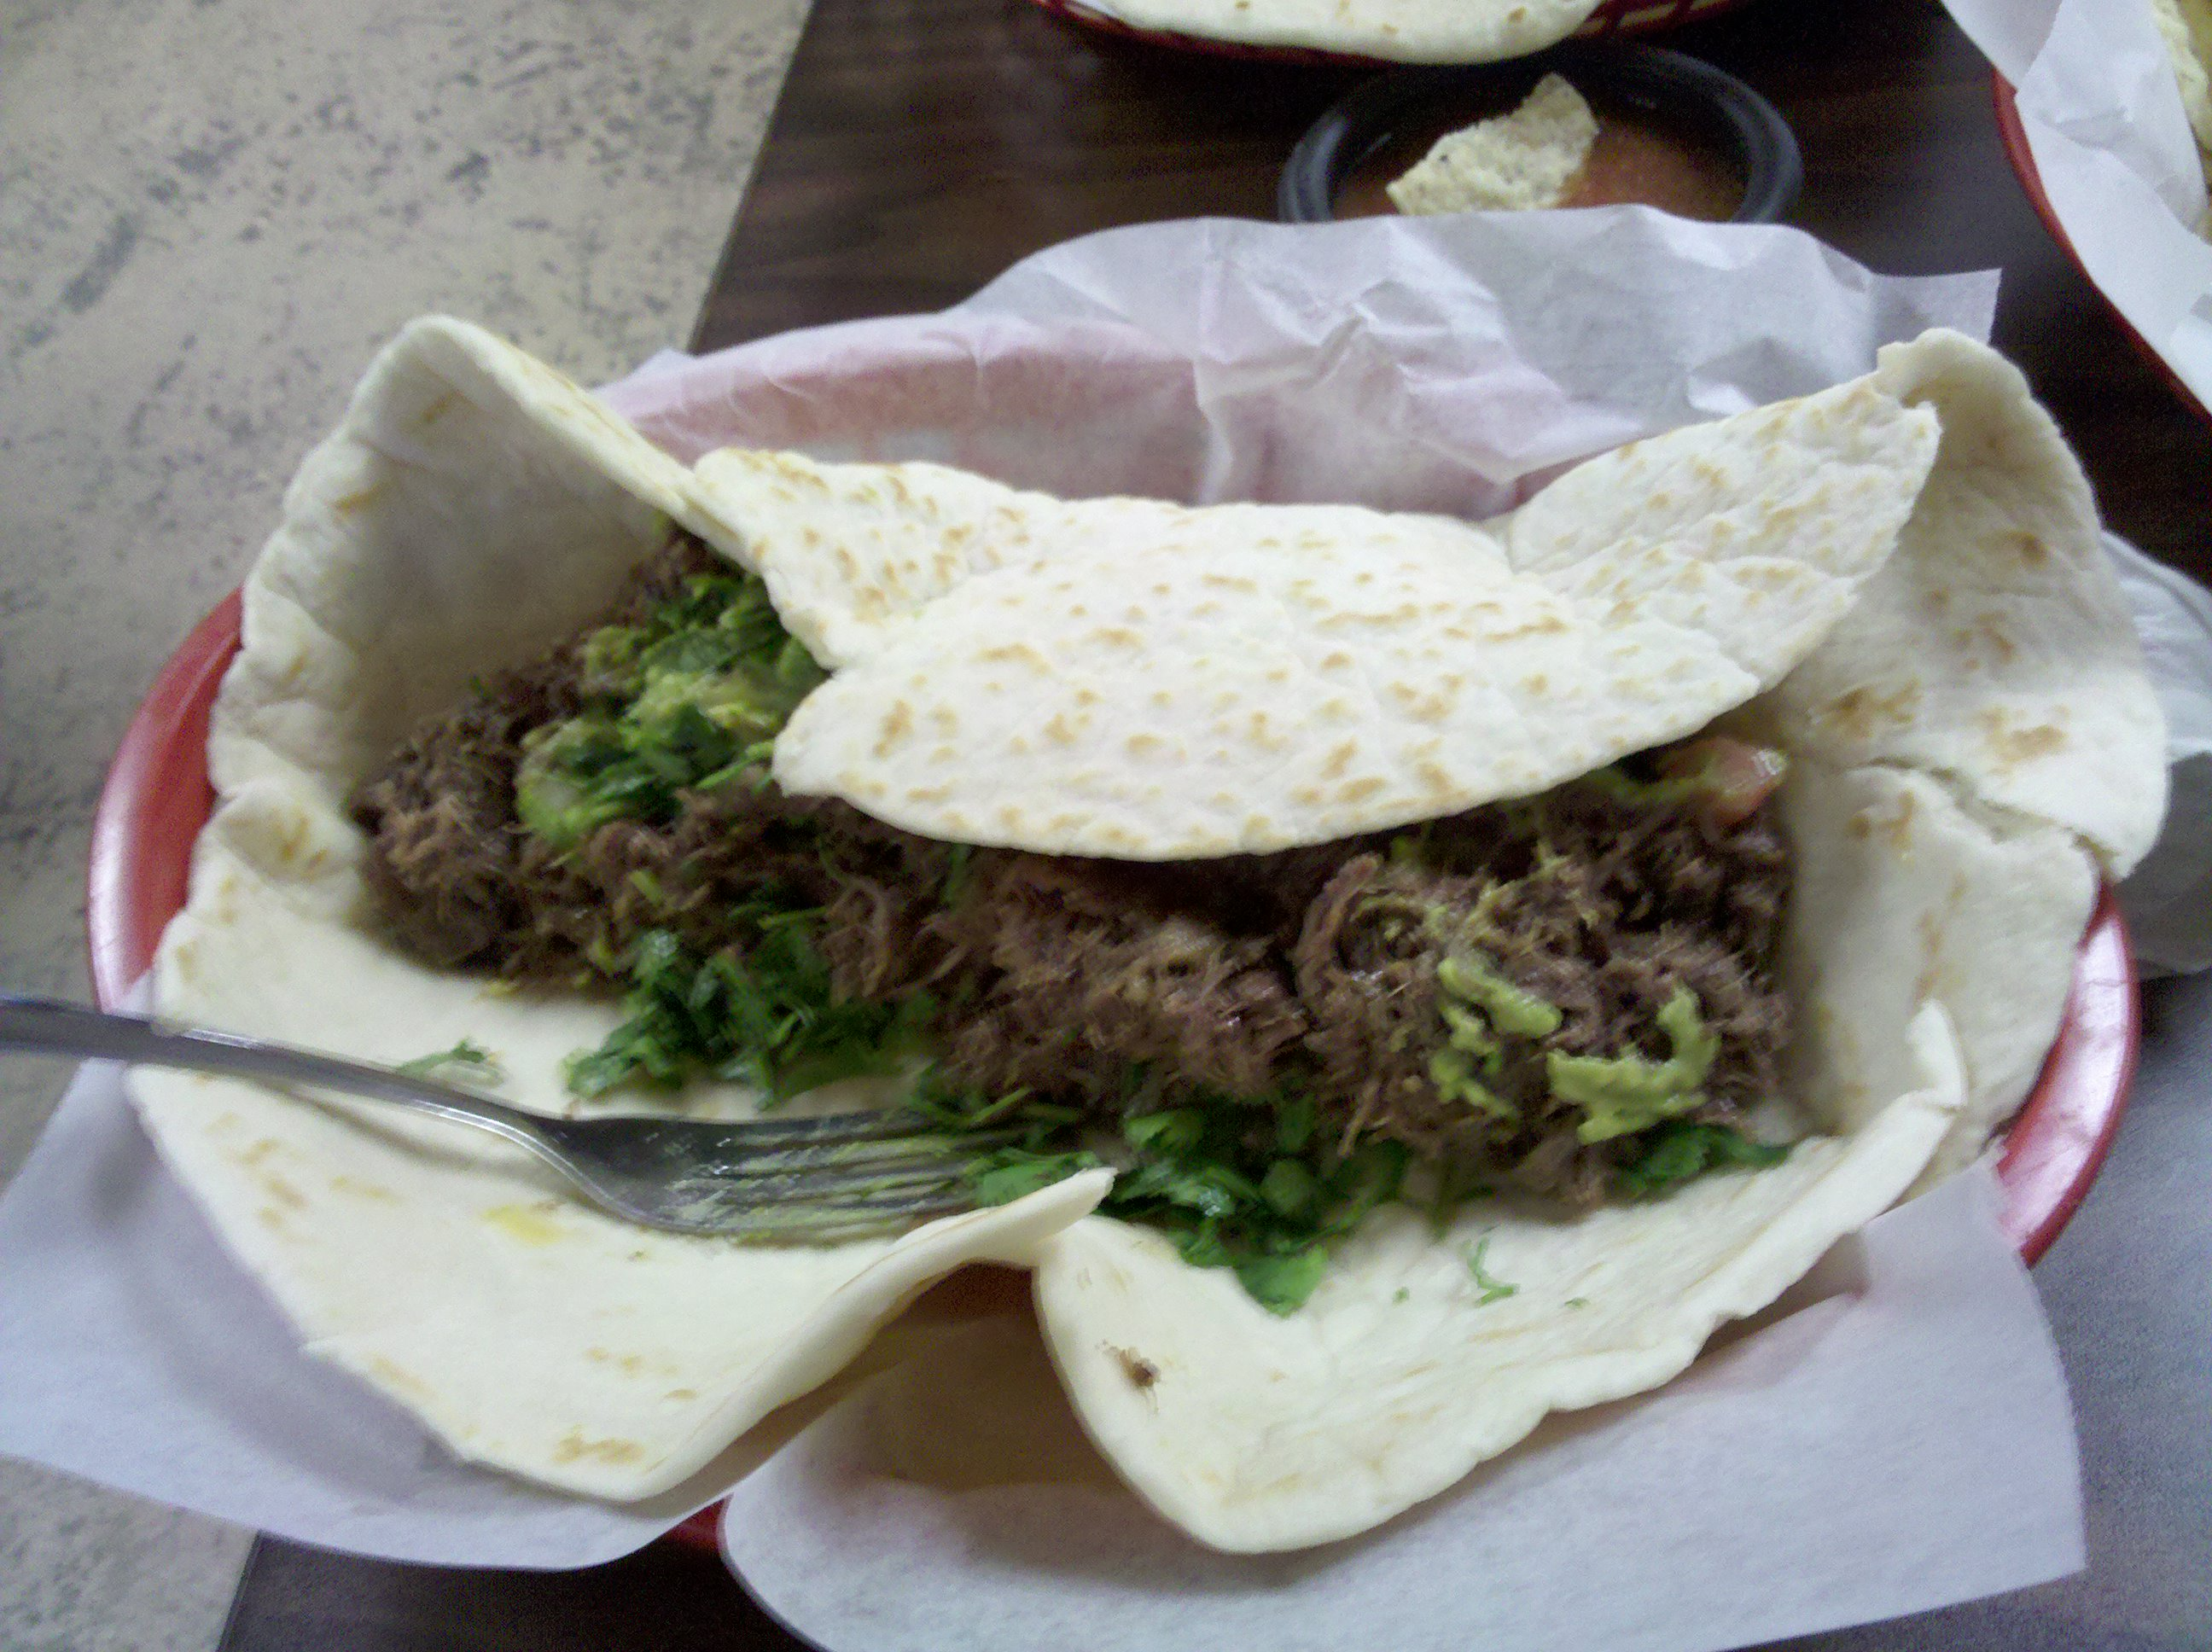 Los Gallo's NEW BRAUNFELS TX :: Oh Boy The Biggest Barbacoa taco. this Taco was 13 in and had pound1/2 of Barbacoa Yum